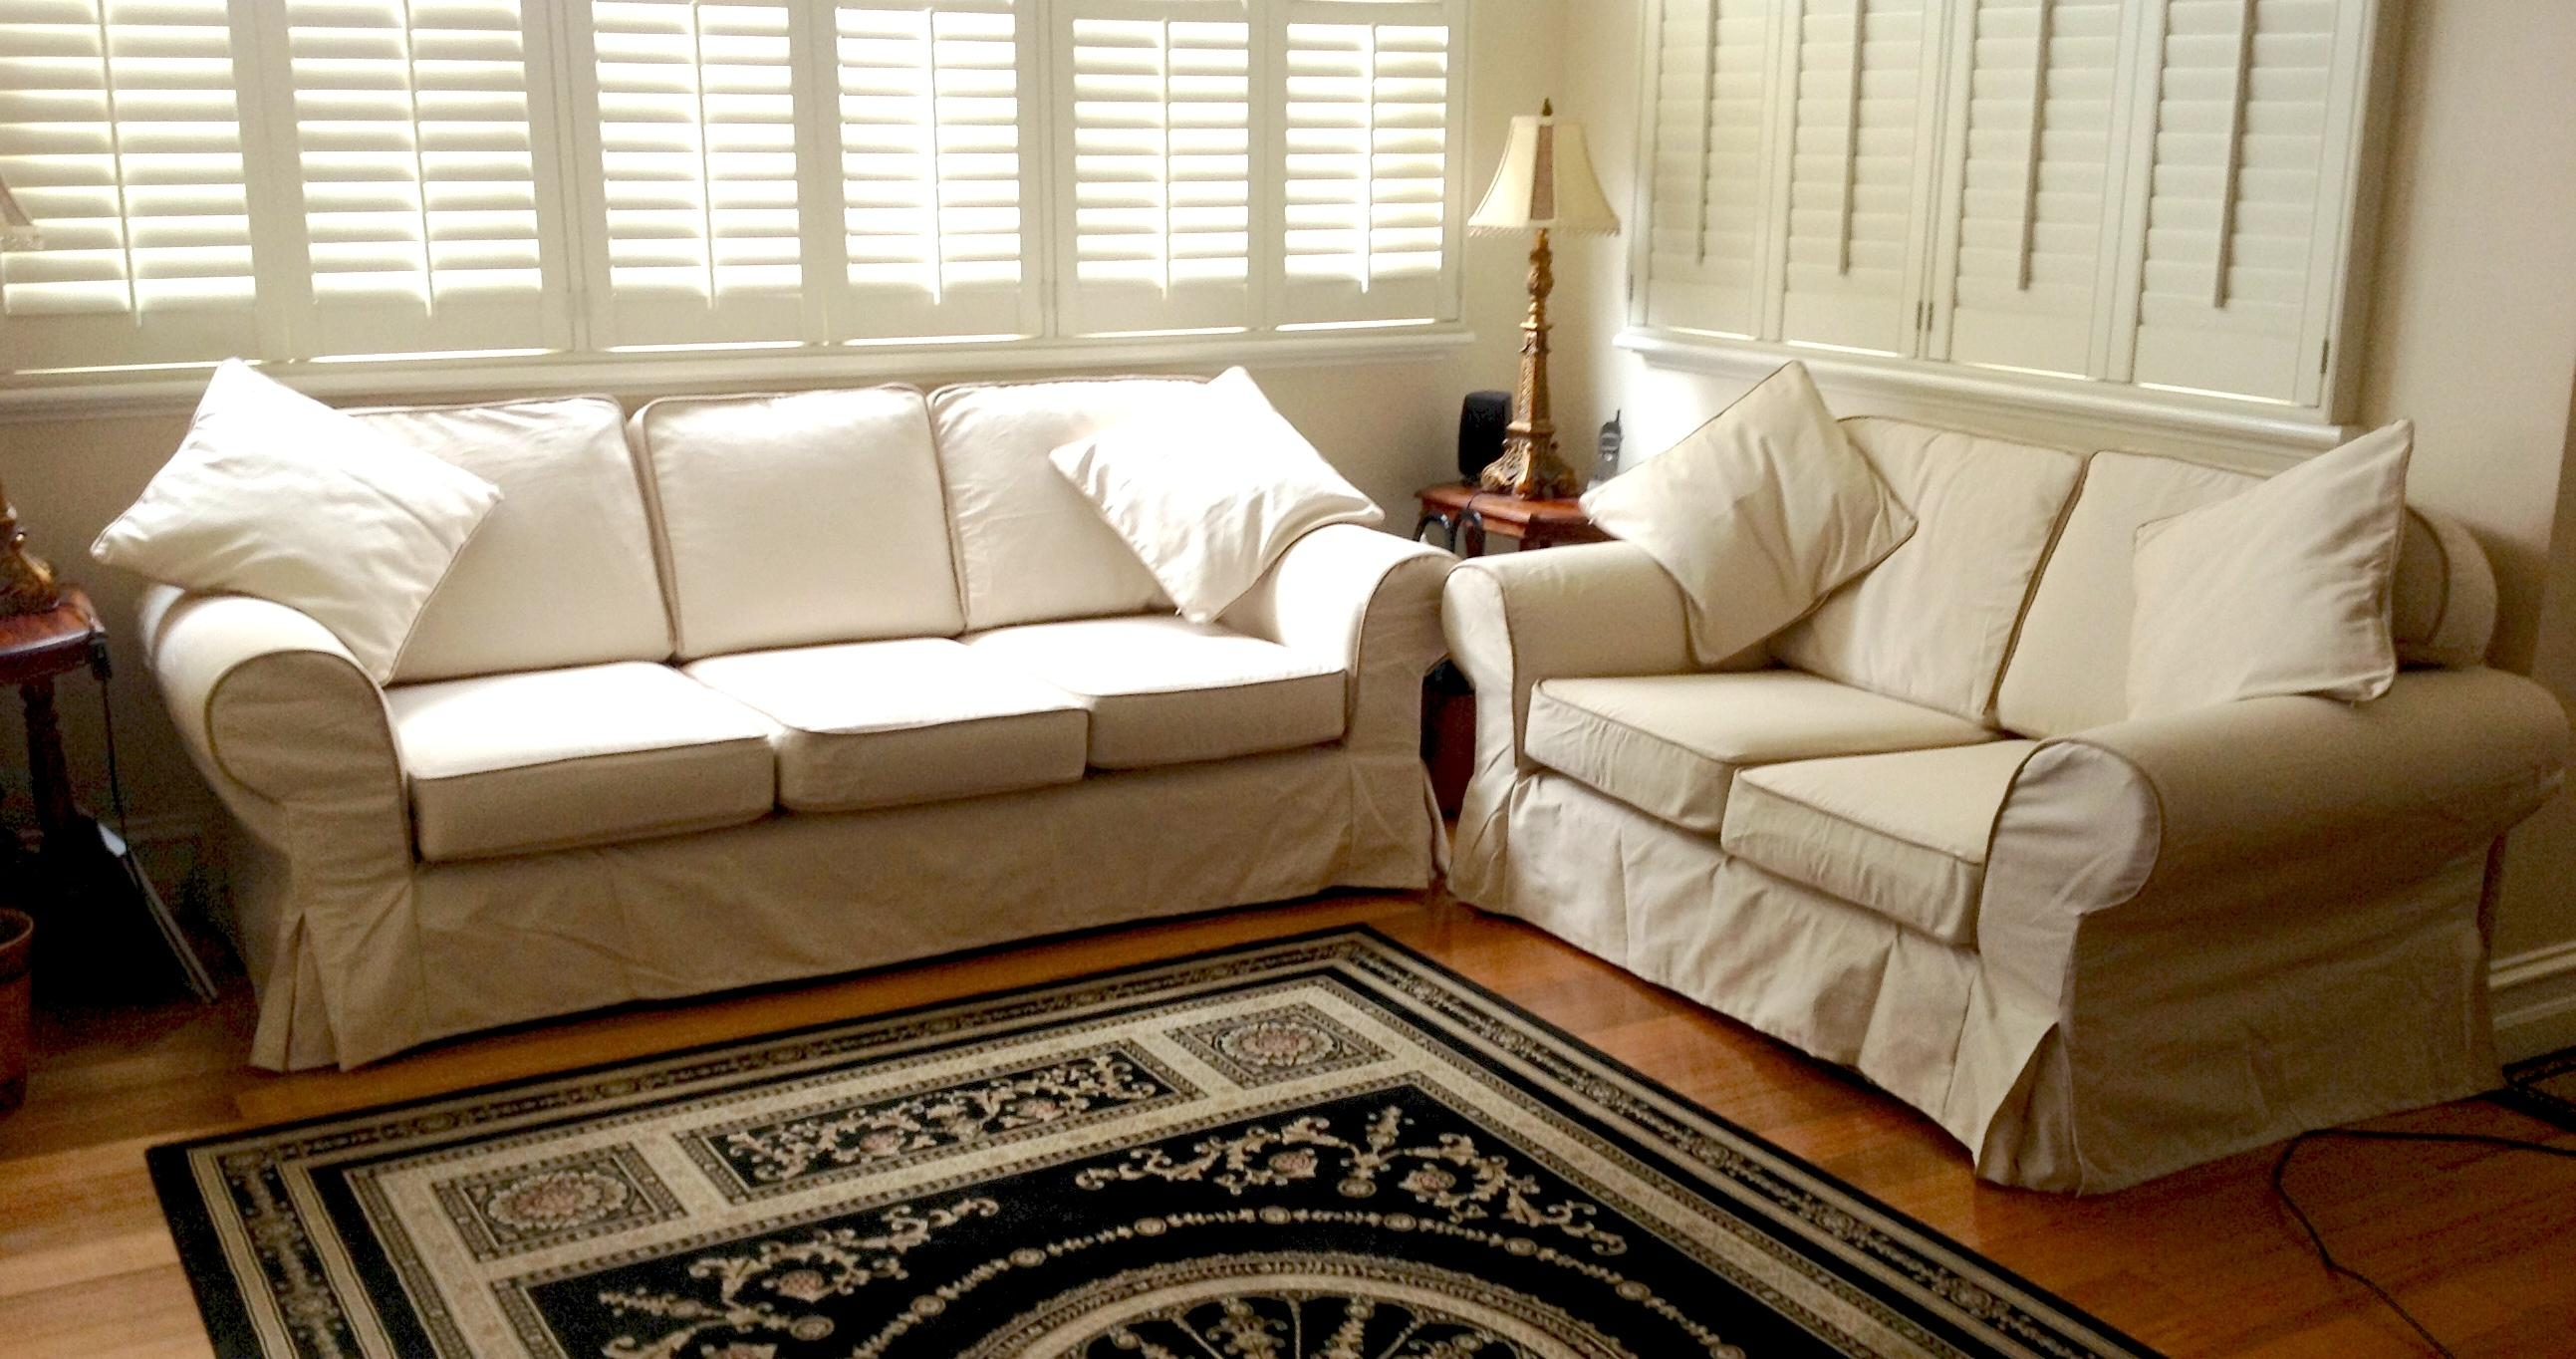 Custom Slipcovers And Couch Cover For Any Sofa Regarding 3 Piece Image